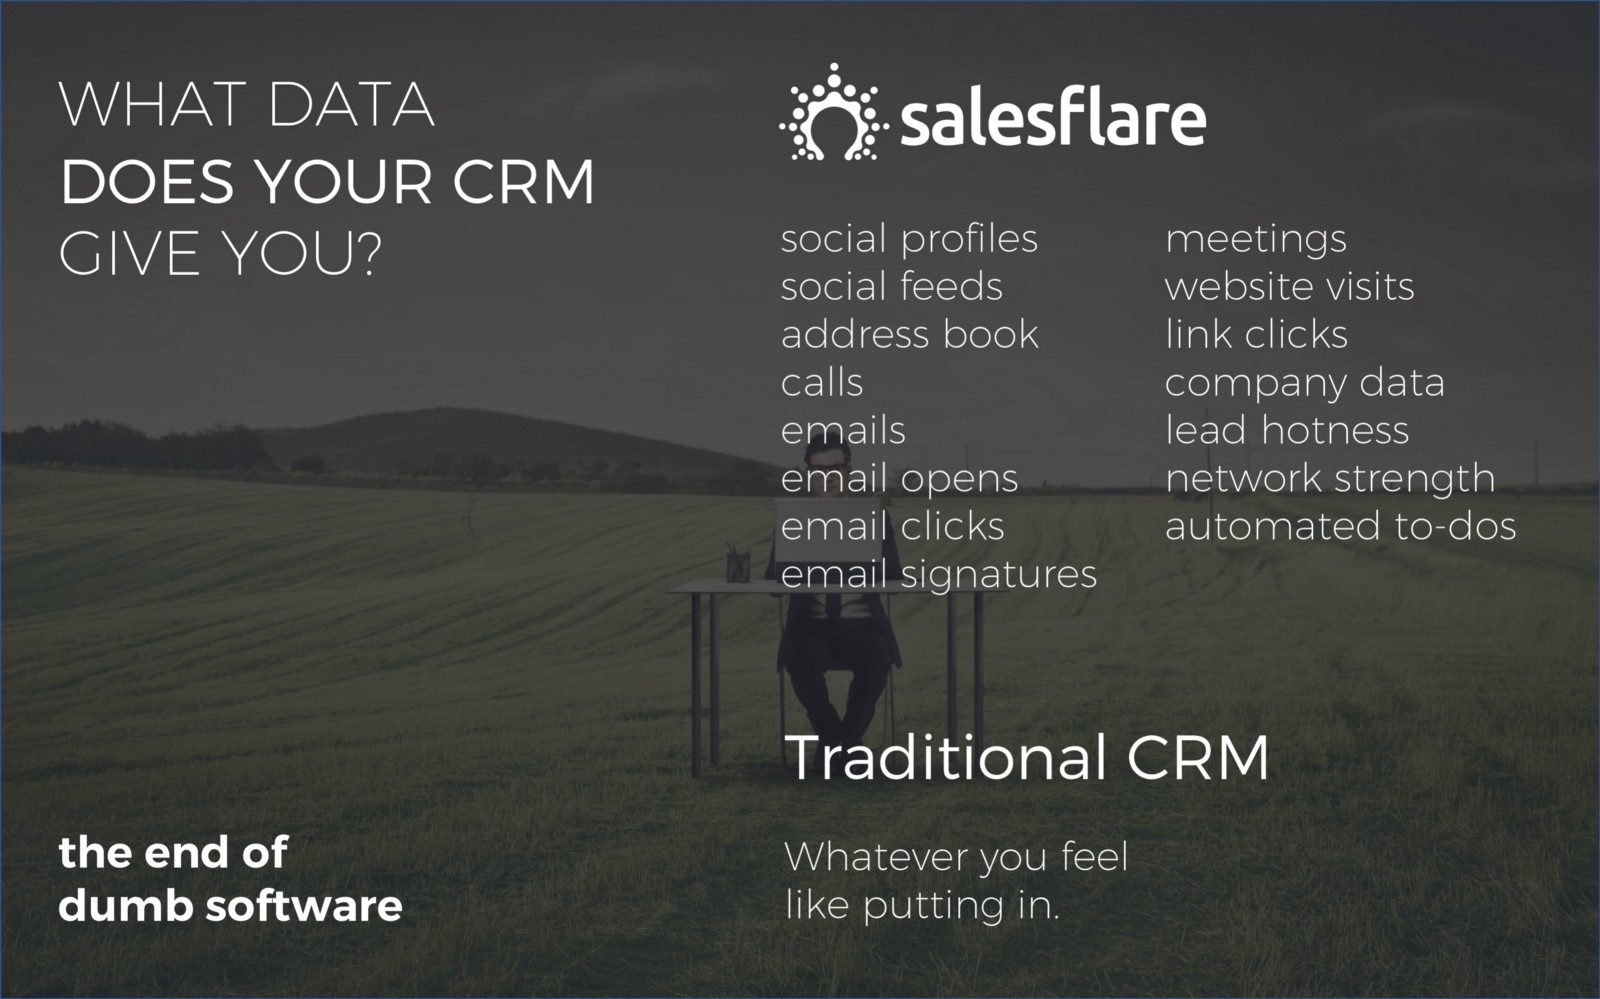 What data does your CRM give you? - Salesflare sales deck